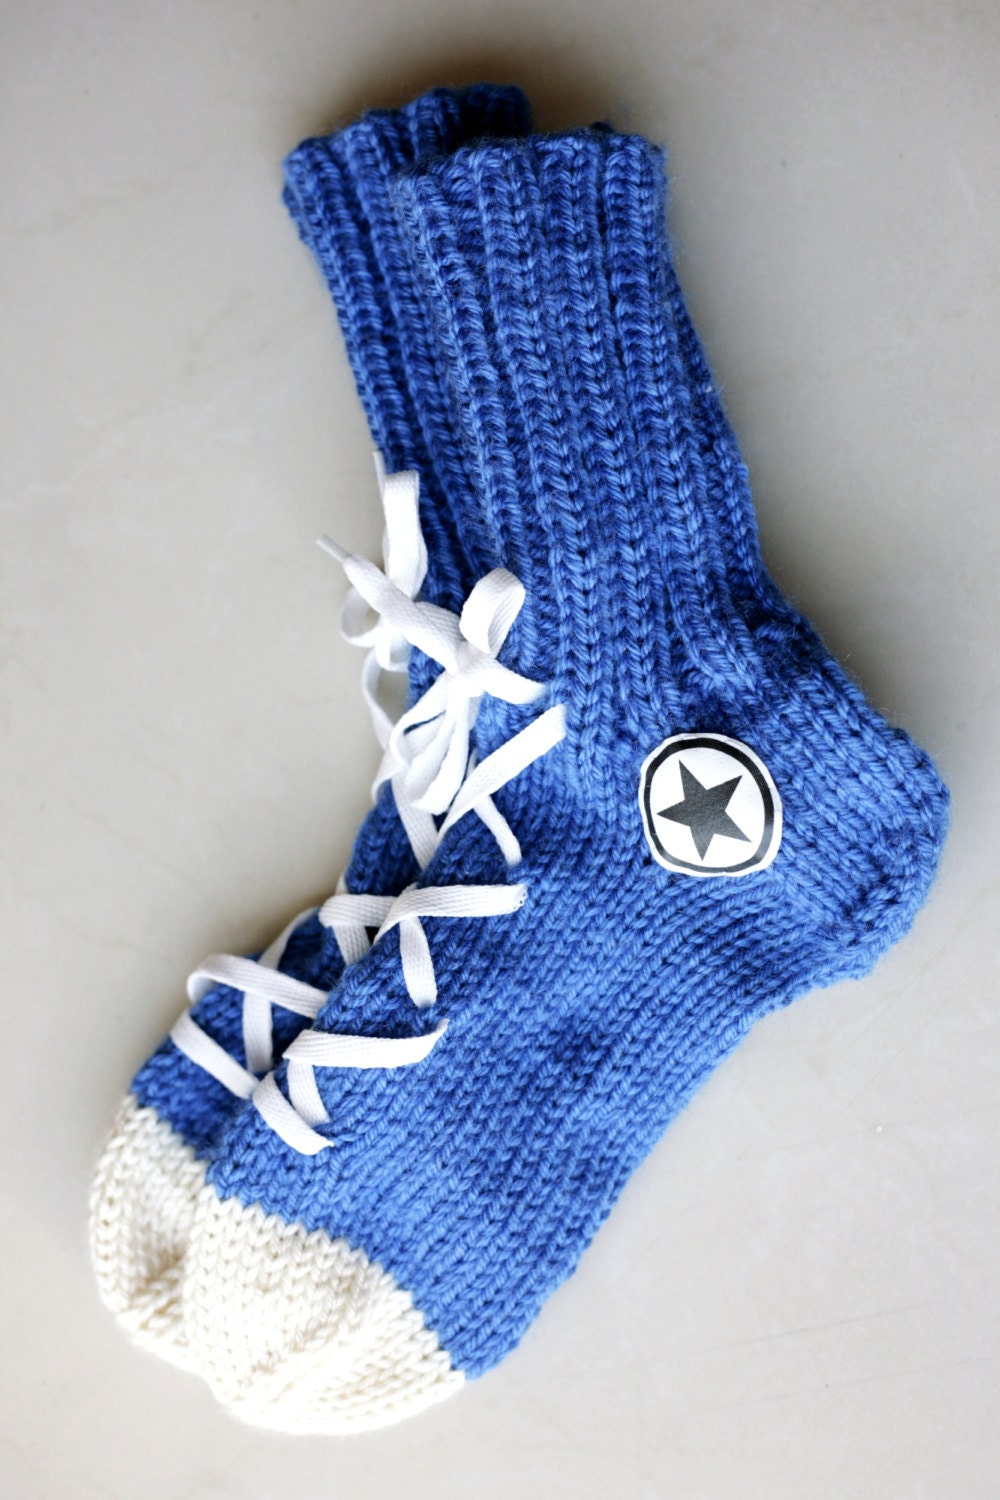 Knitting Pattern For Converse Socks : Hand Knit Converse socks Warm Blue Winter Wear Hipster